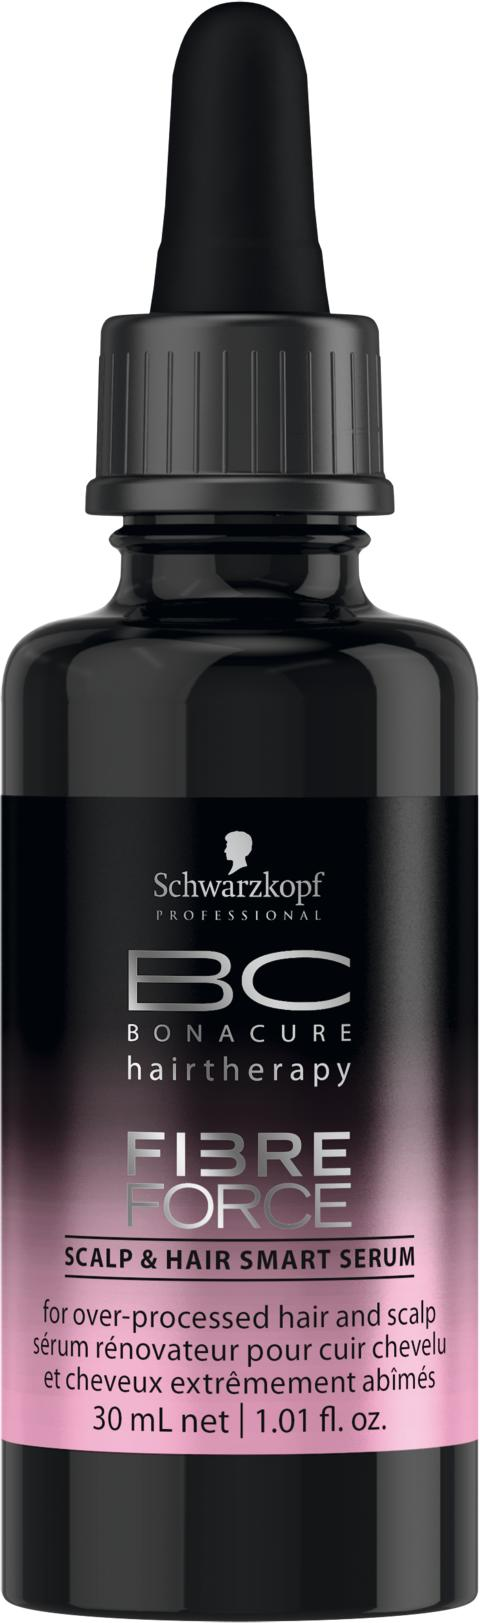 Schwarzkopt Professional BC Fibre Force - Scalp & Hair Smart Serum